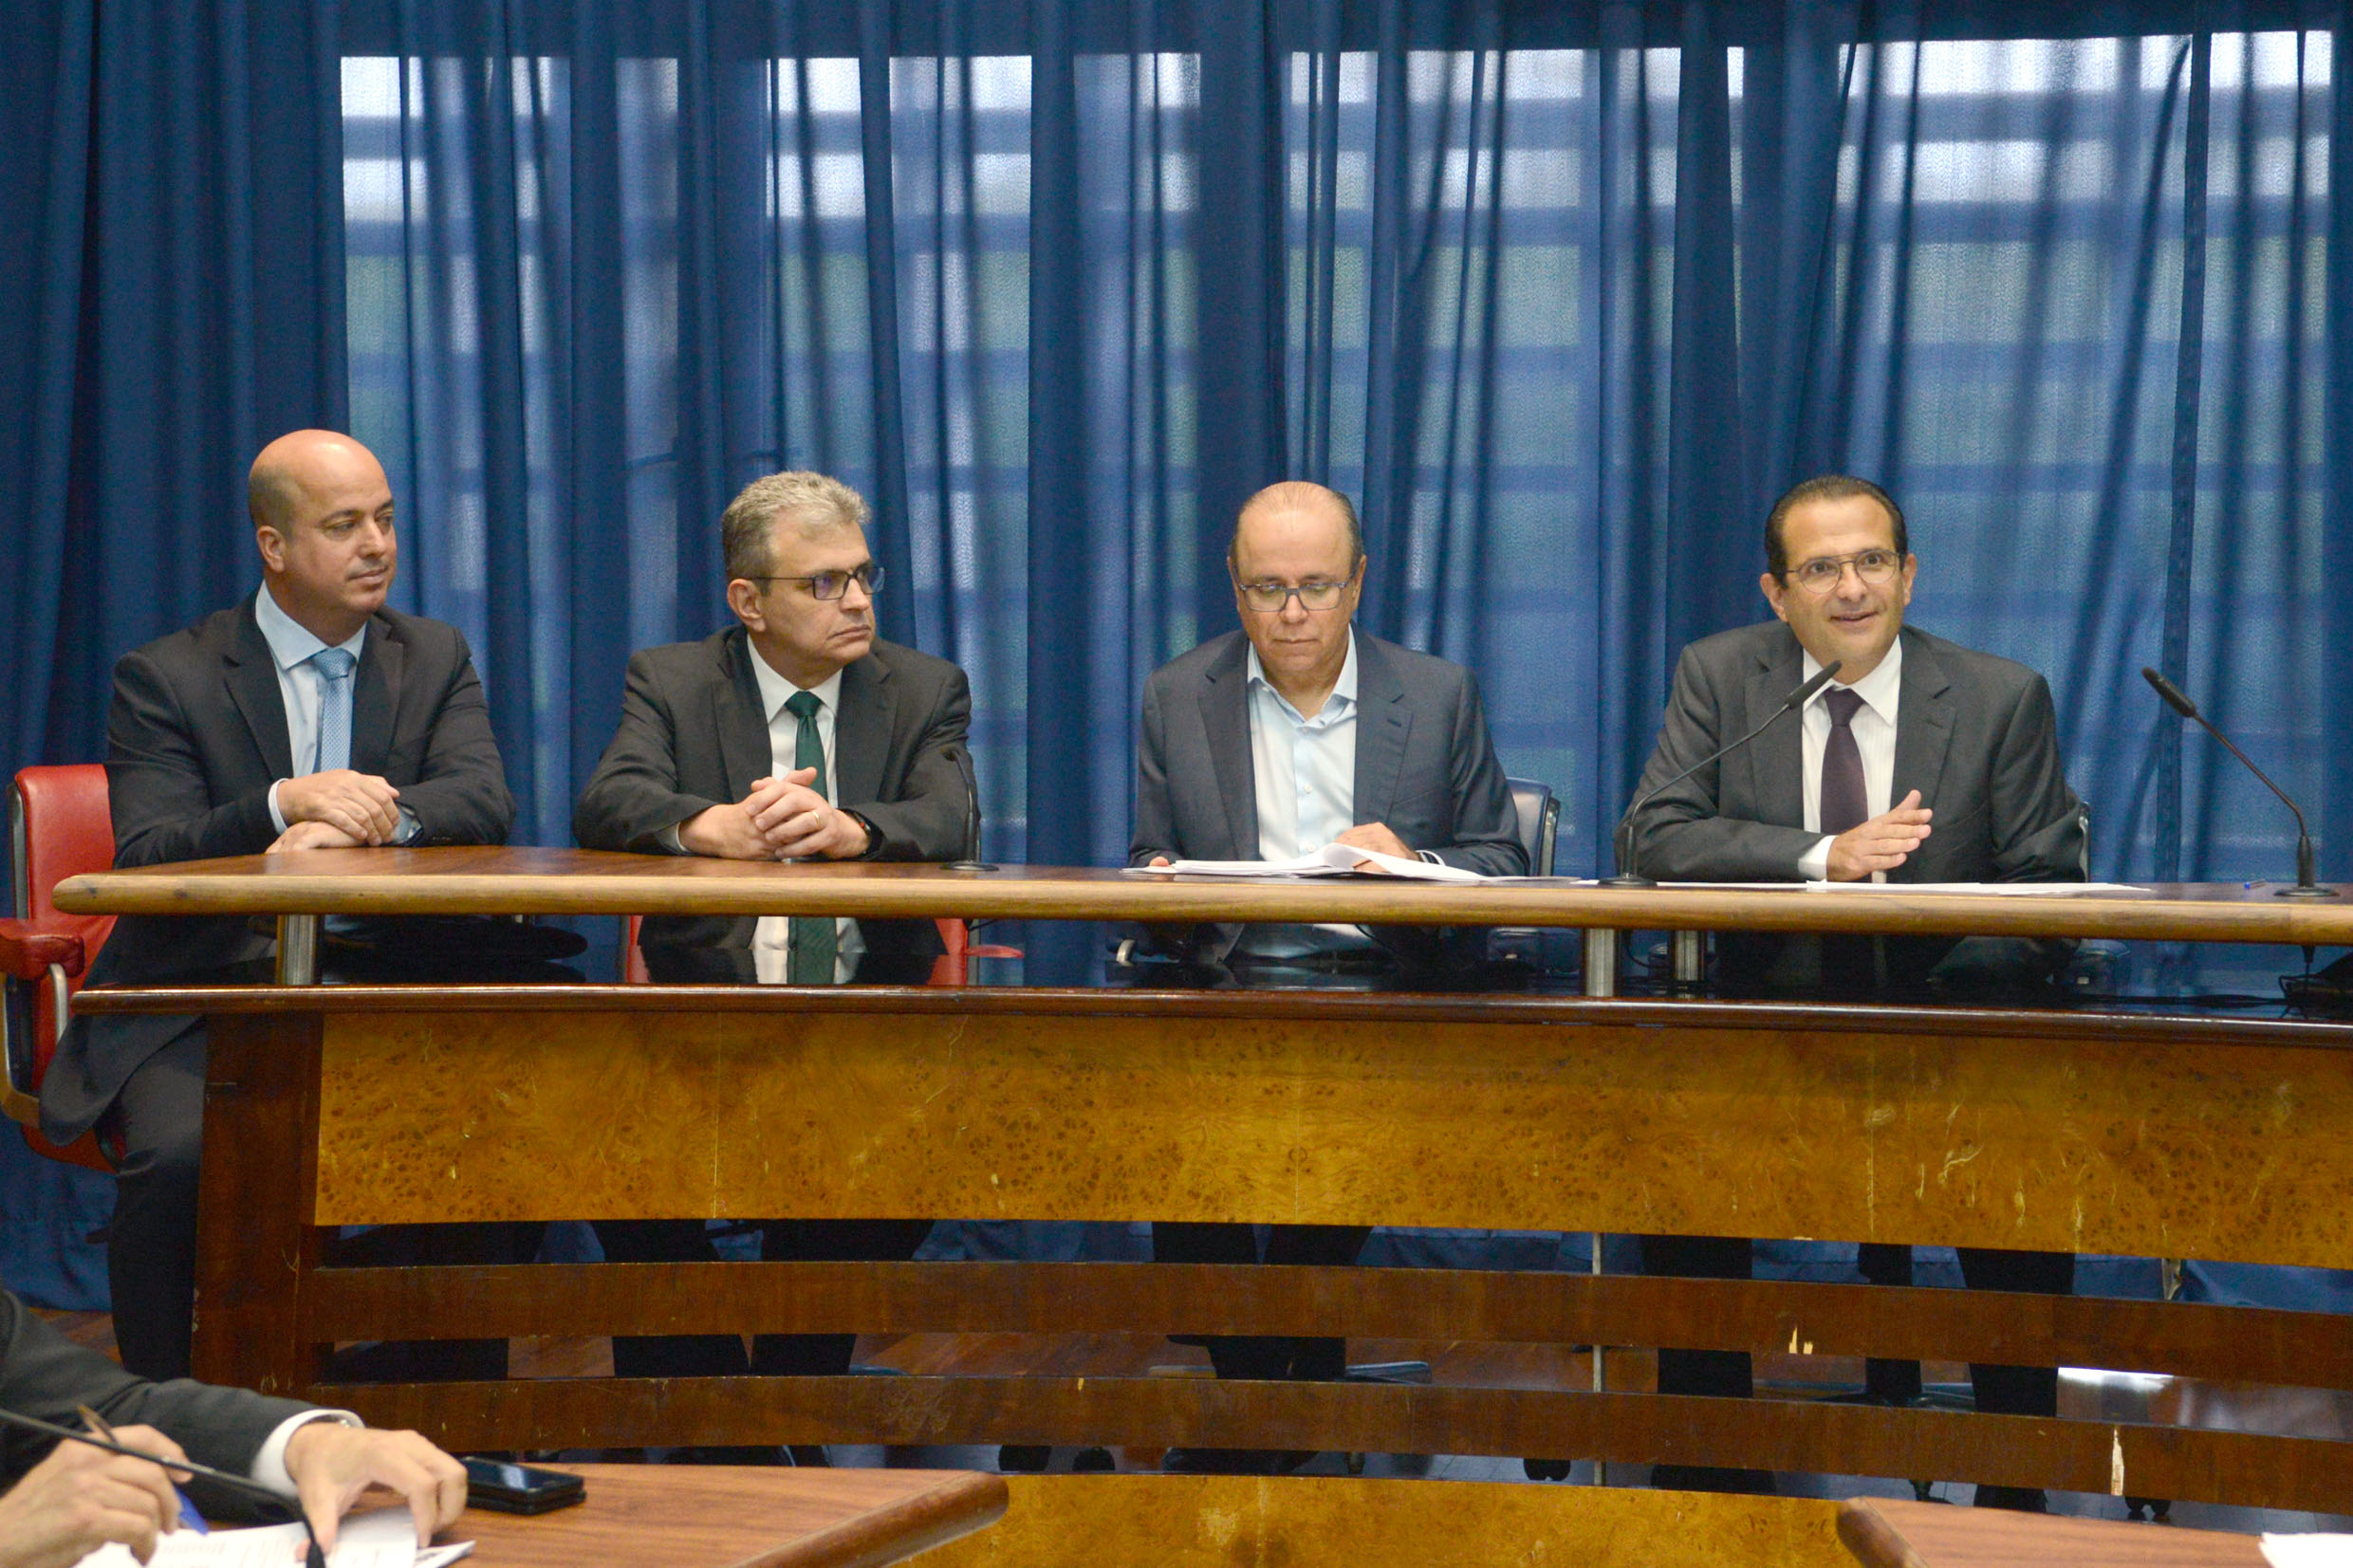 Edmir Chedid preside a comissão<a style='float:right' href='https://www3.al.sp.gov.br/repositorio/noticia/N-03-2019/fg231010.jpg' target=_blank><img src='/_img/material-file-download-white.png' width='14px' alt='Clique para baixar a imagem'></a>